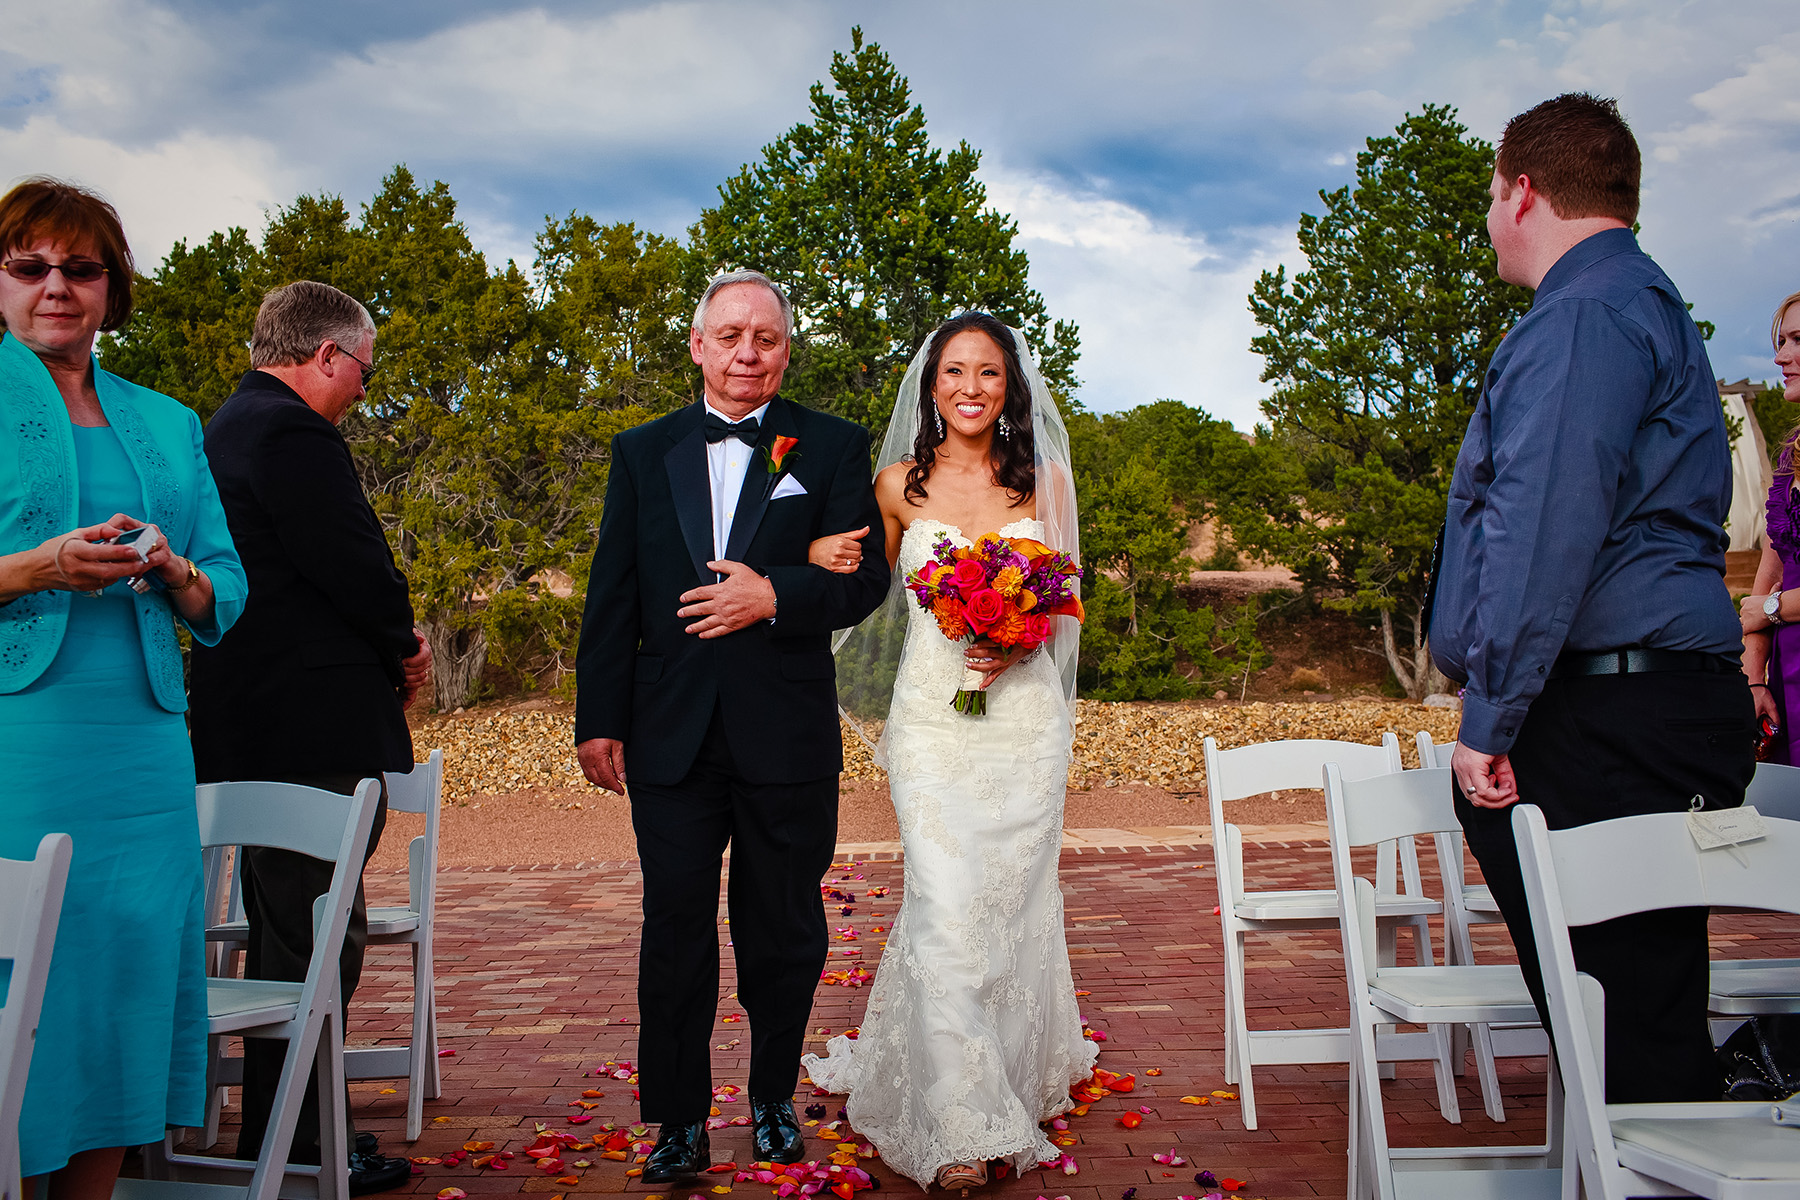 Tabitha-Dallas-wedding-four-seasons-resort-rancho-encantado-santa-fe-new-mexico-1024